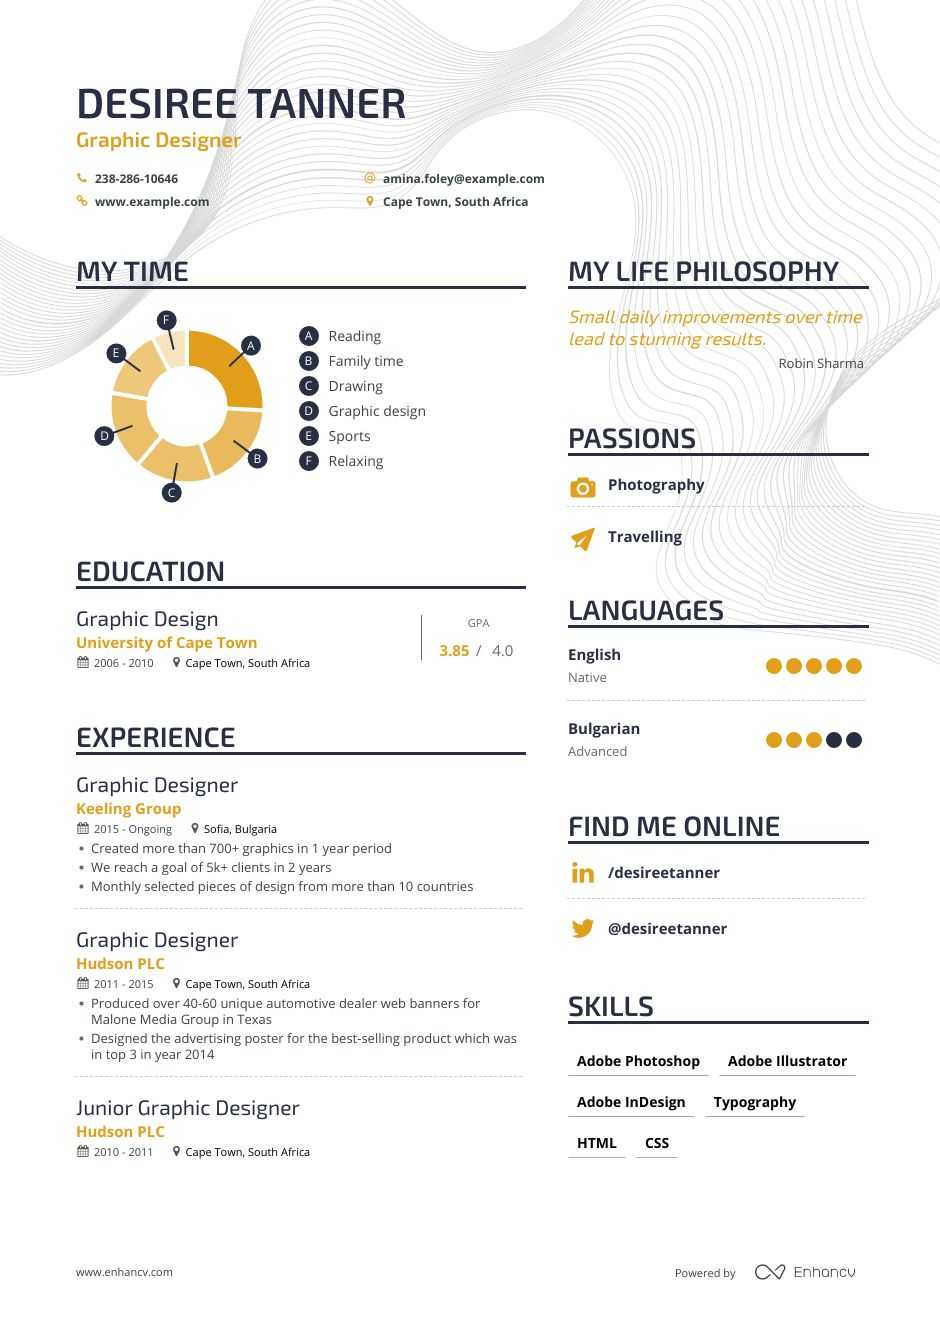 Graphic Designer Resume Examples Skills Templates More For 2020